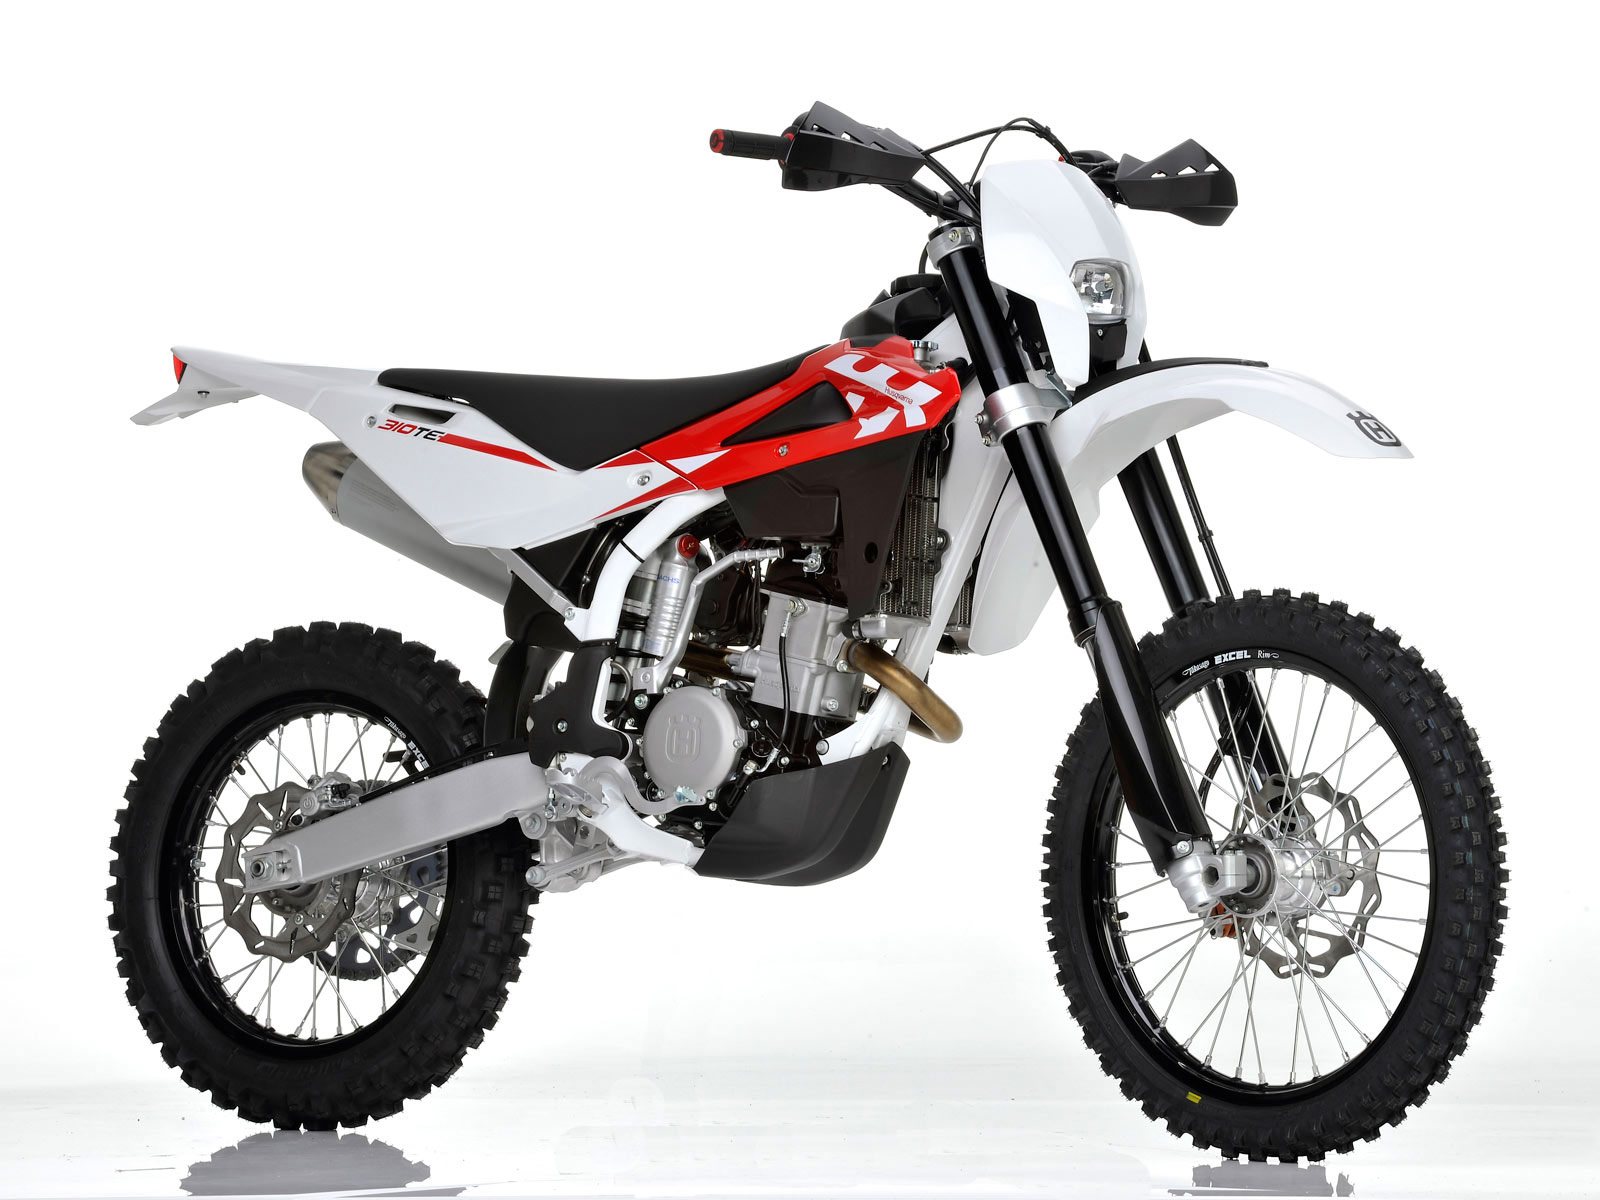 husqvarna te310 motorcycle accident lawyers. Black Bedroom Furniture Sets. Home Design Ideas